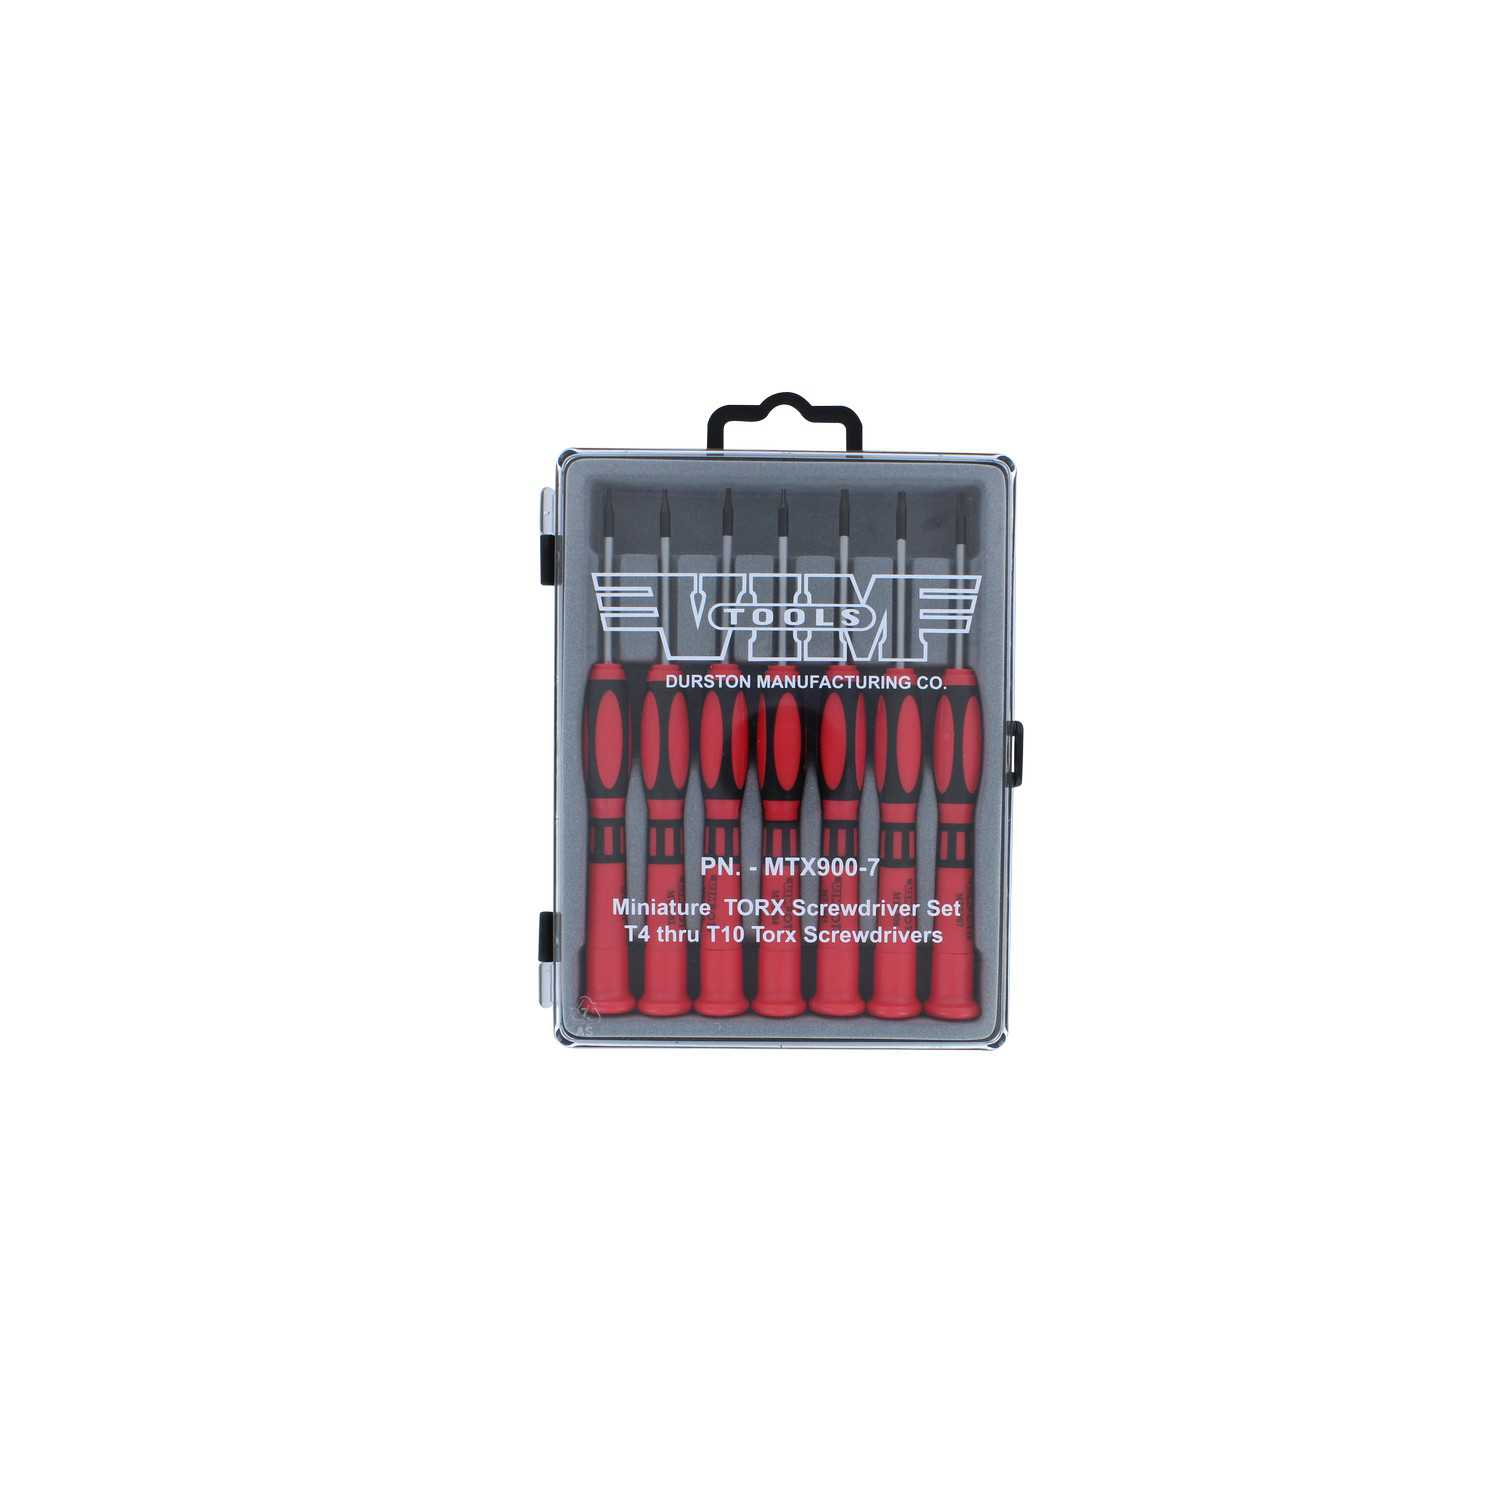 Miniature Torx Screwdriver Set 7 piece